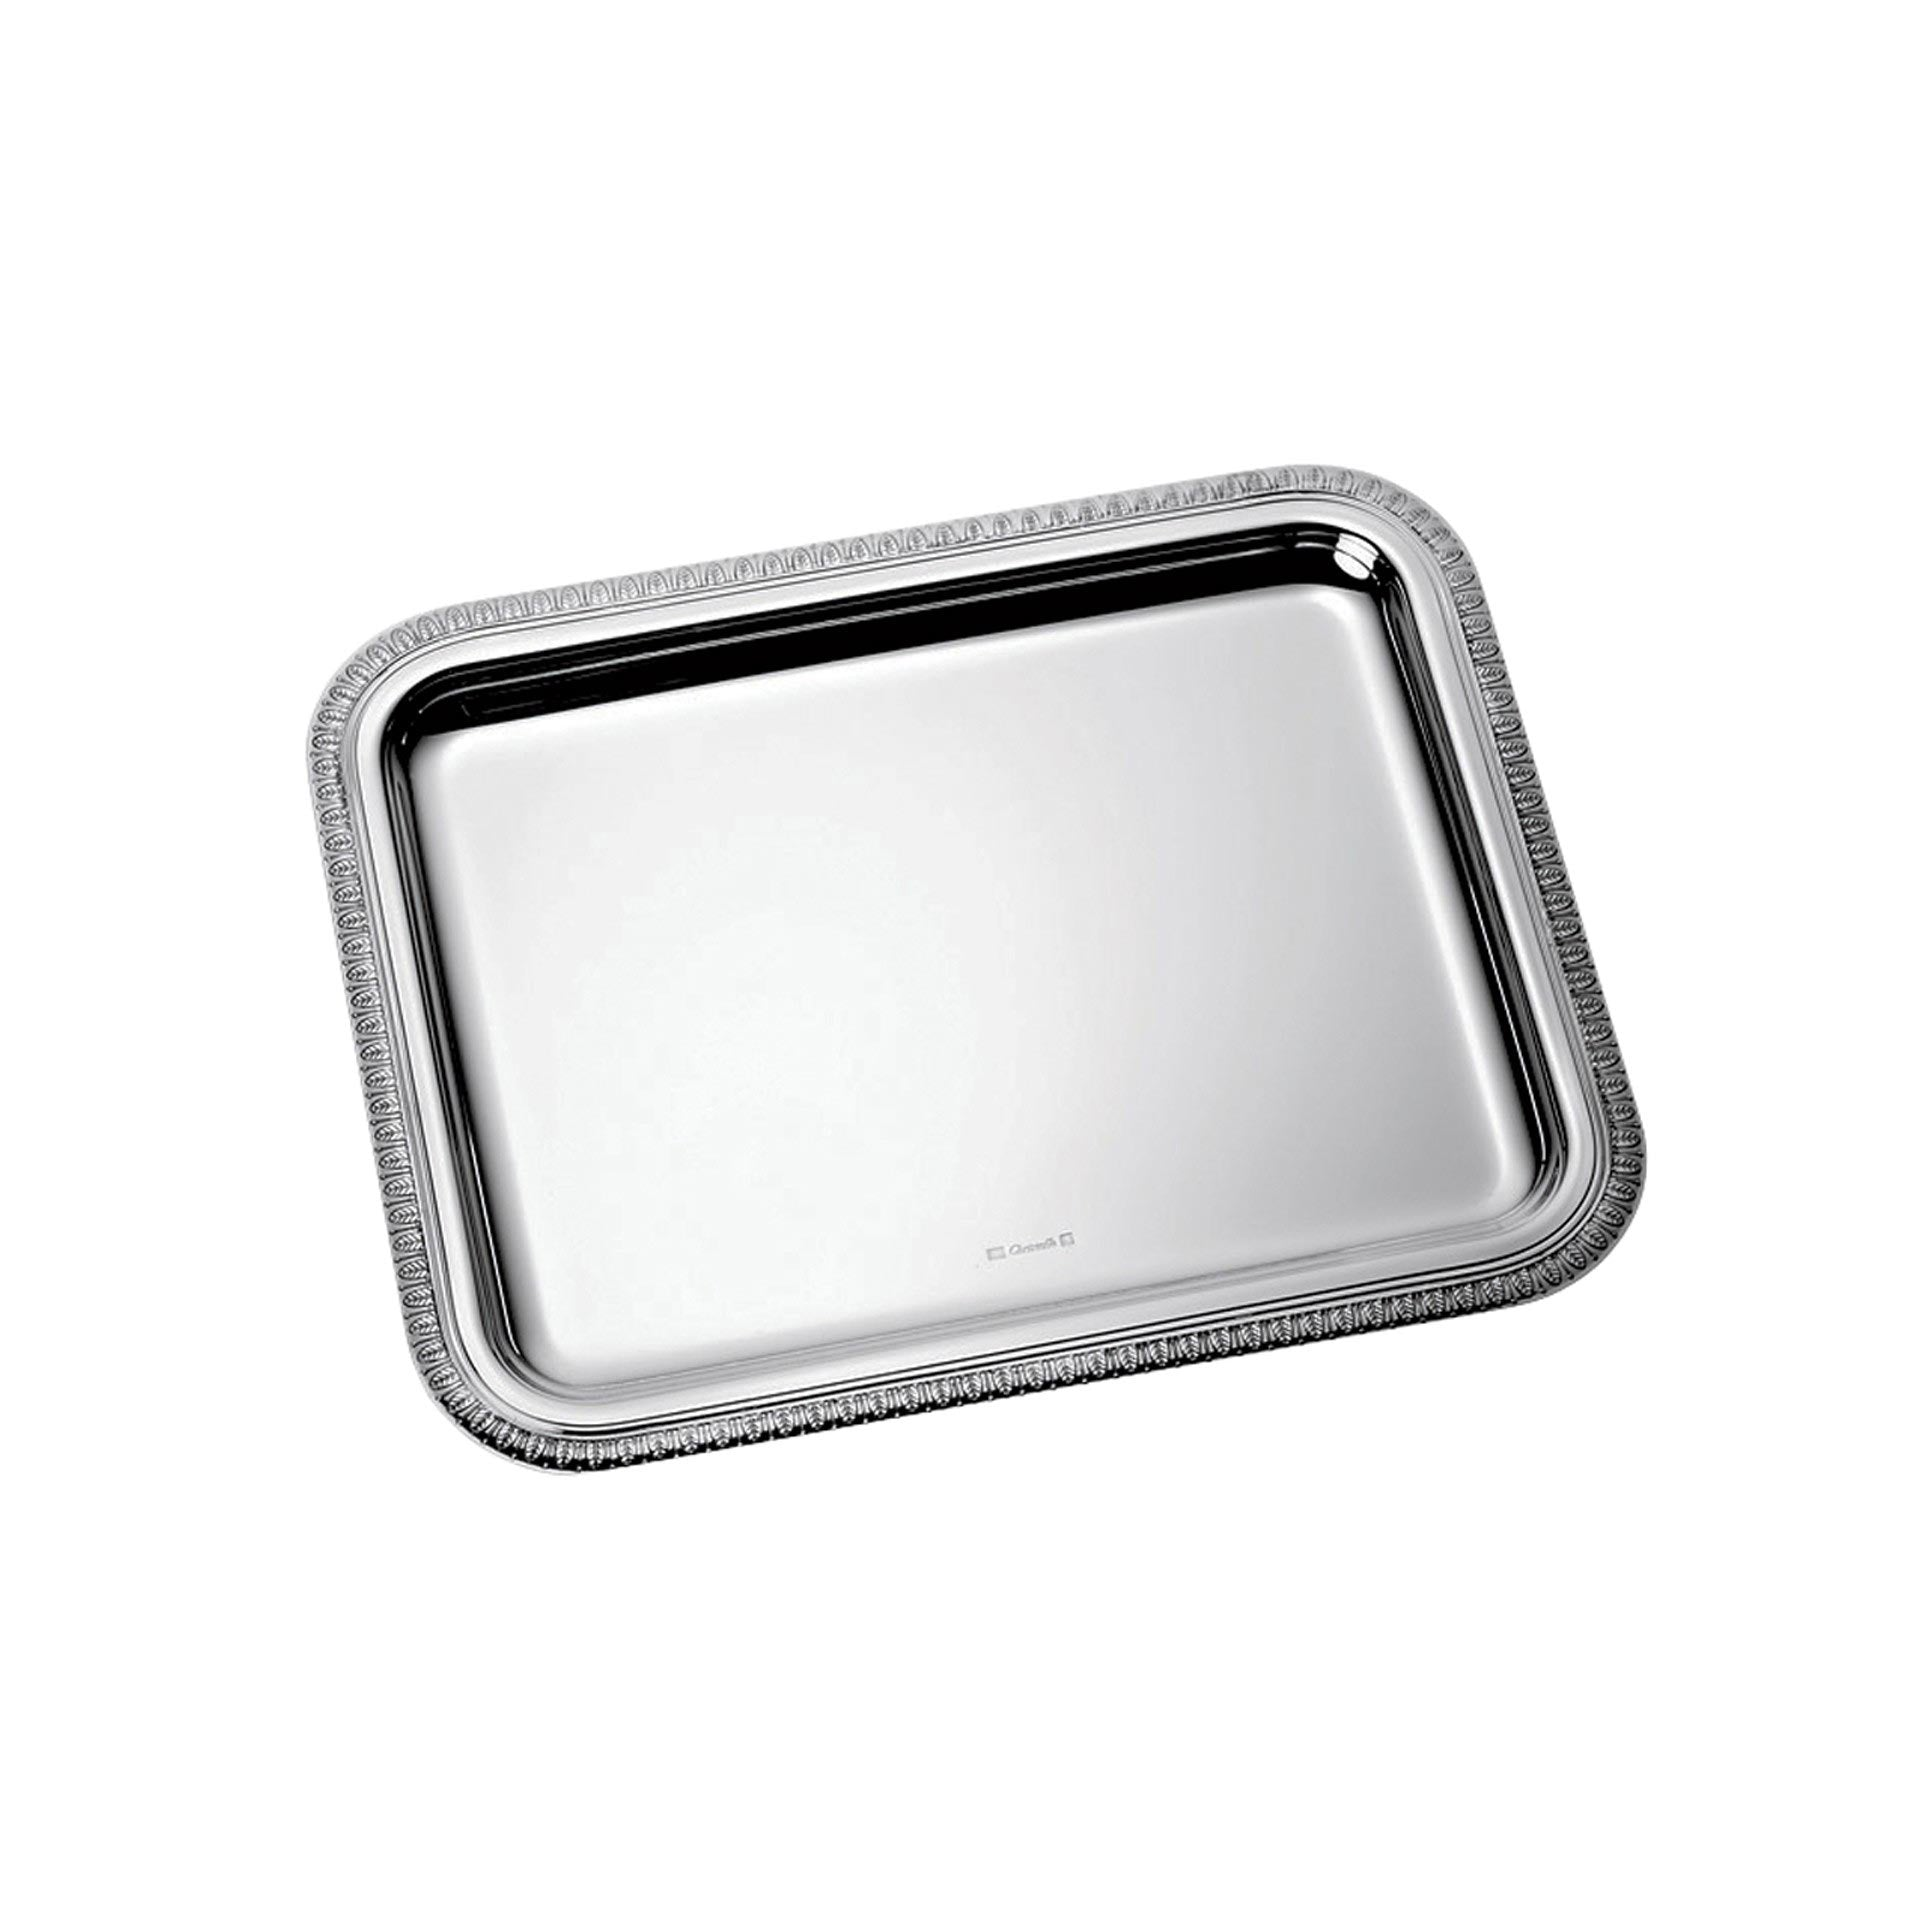 Christofle rectangular tray small Malmaison rectangular yacht service tray